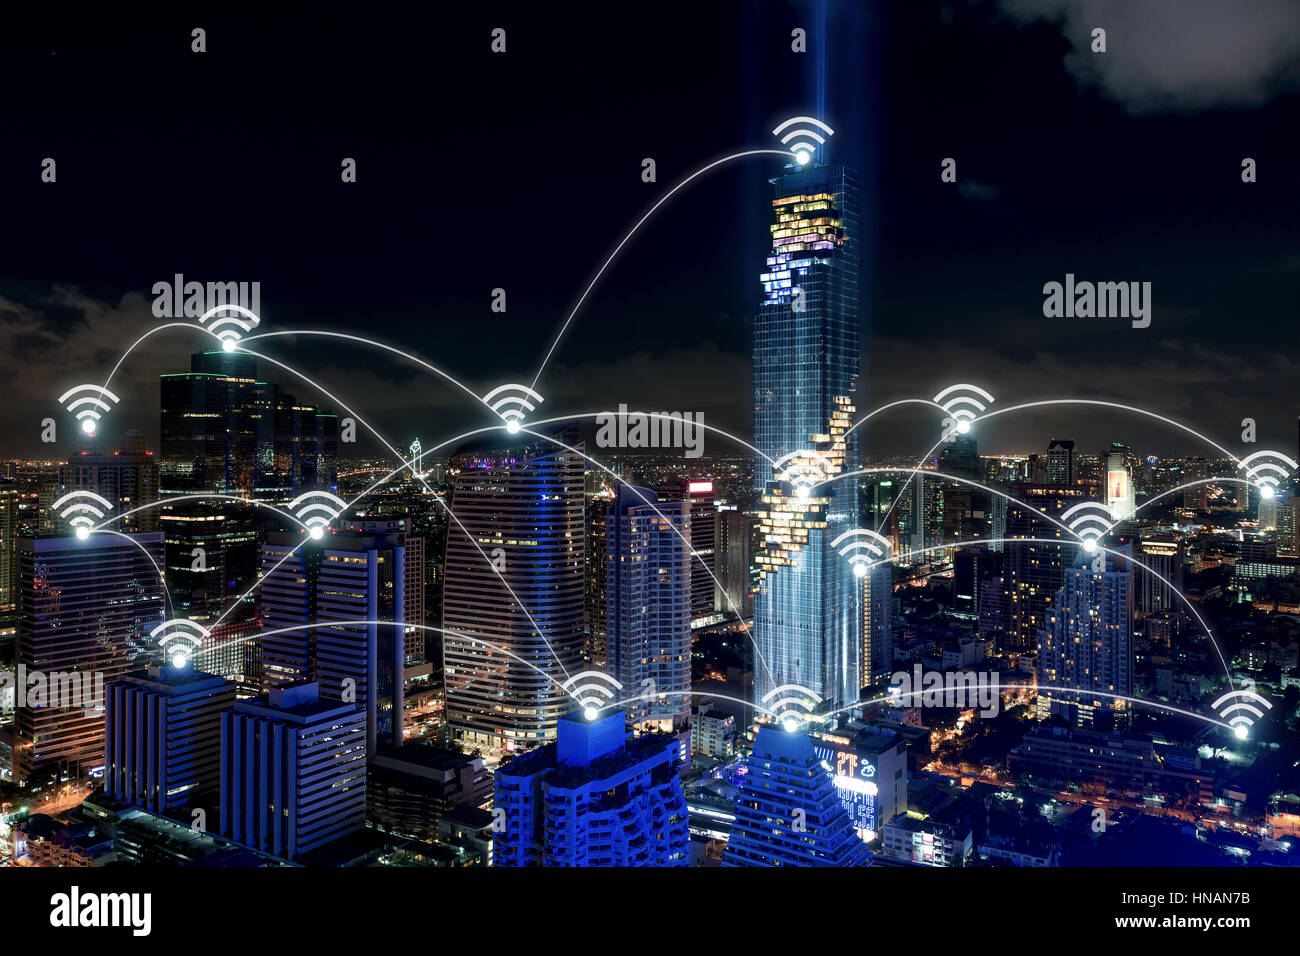 Smart city and wireless communication network, business district with office building, abstract image visual, internet - Stock Image